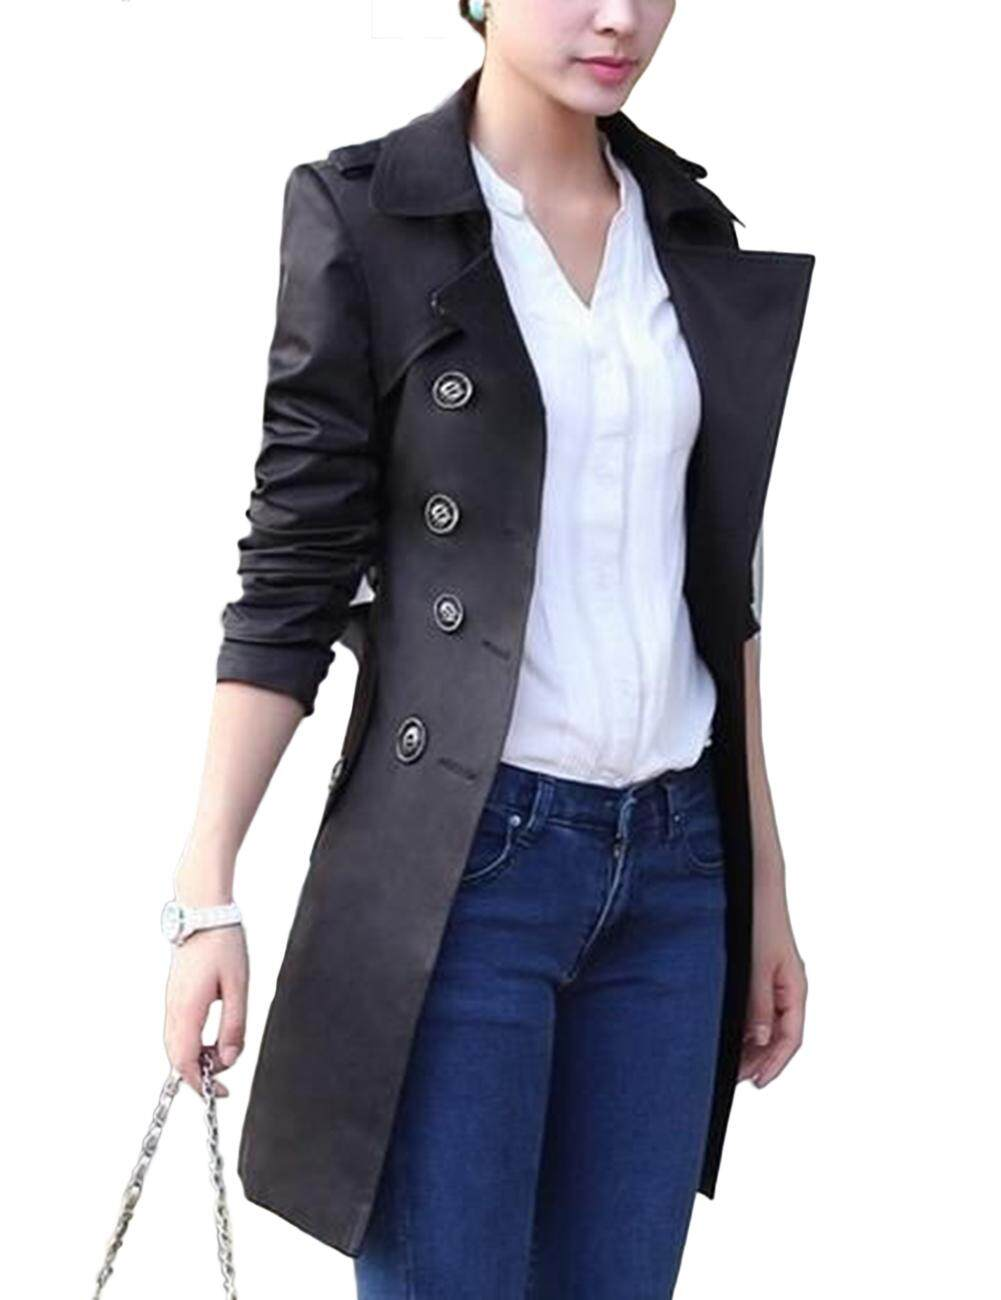 Wanita Lady S Jaket Mantel Trendi Double-Breasted Sabuk Slim Jaket Ukuran Besar By The Sunnyshop.